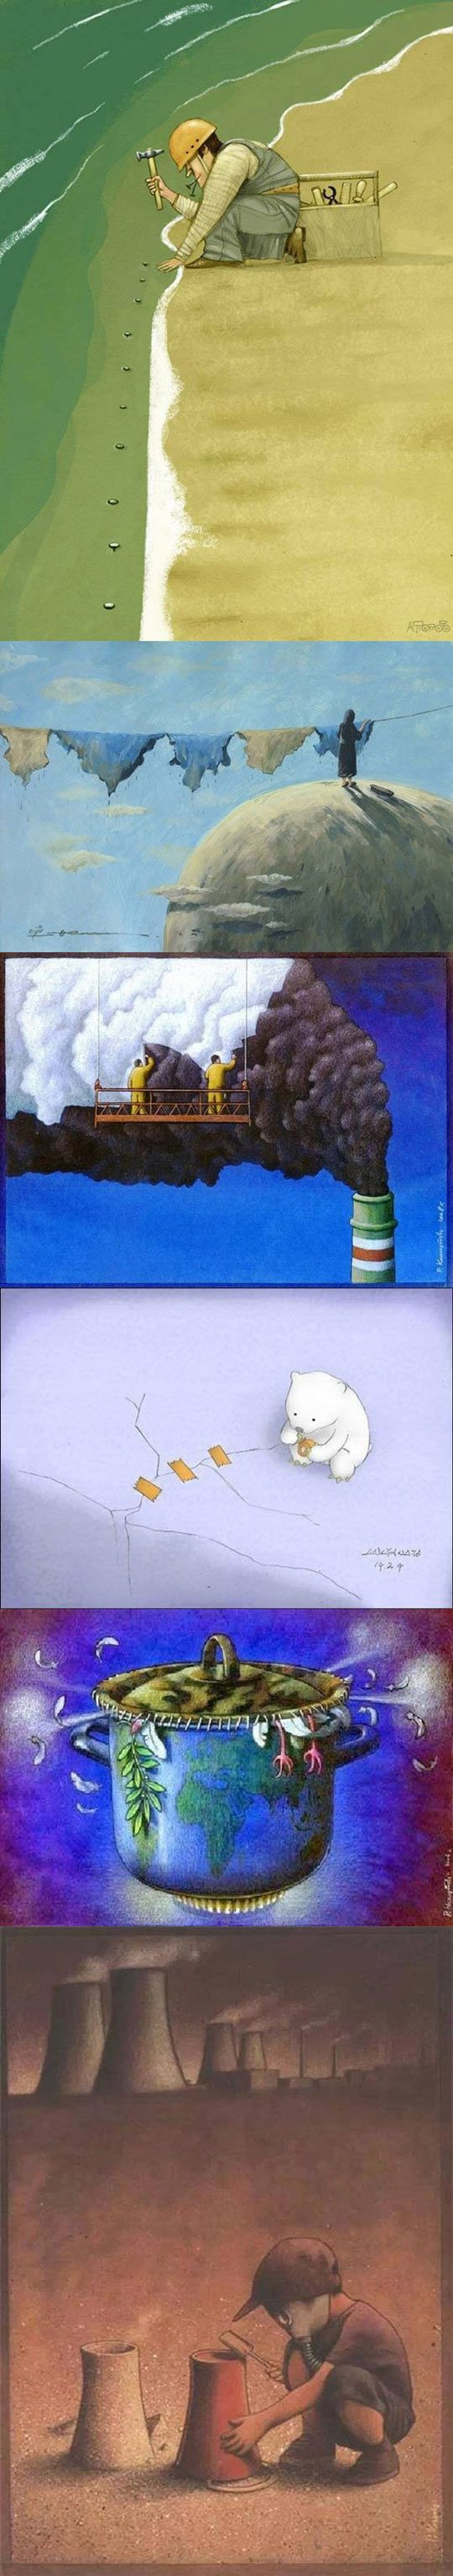 Magnificent Illustrations To Think About Climate Change